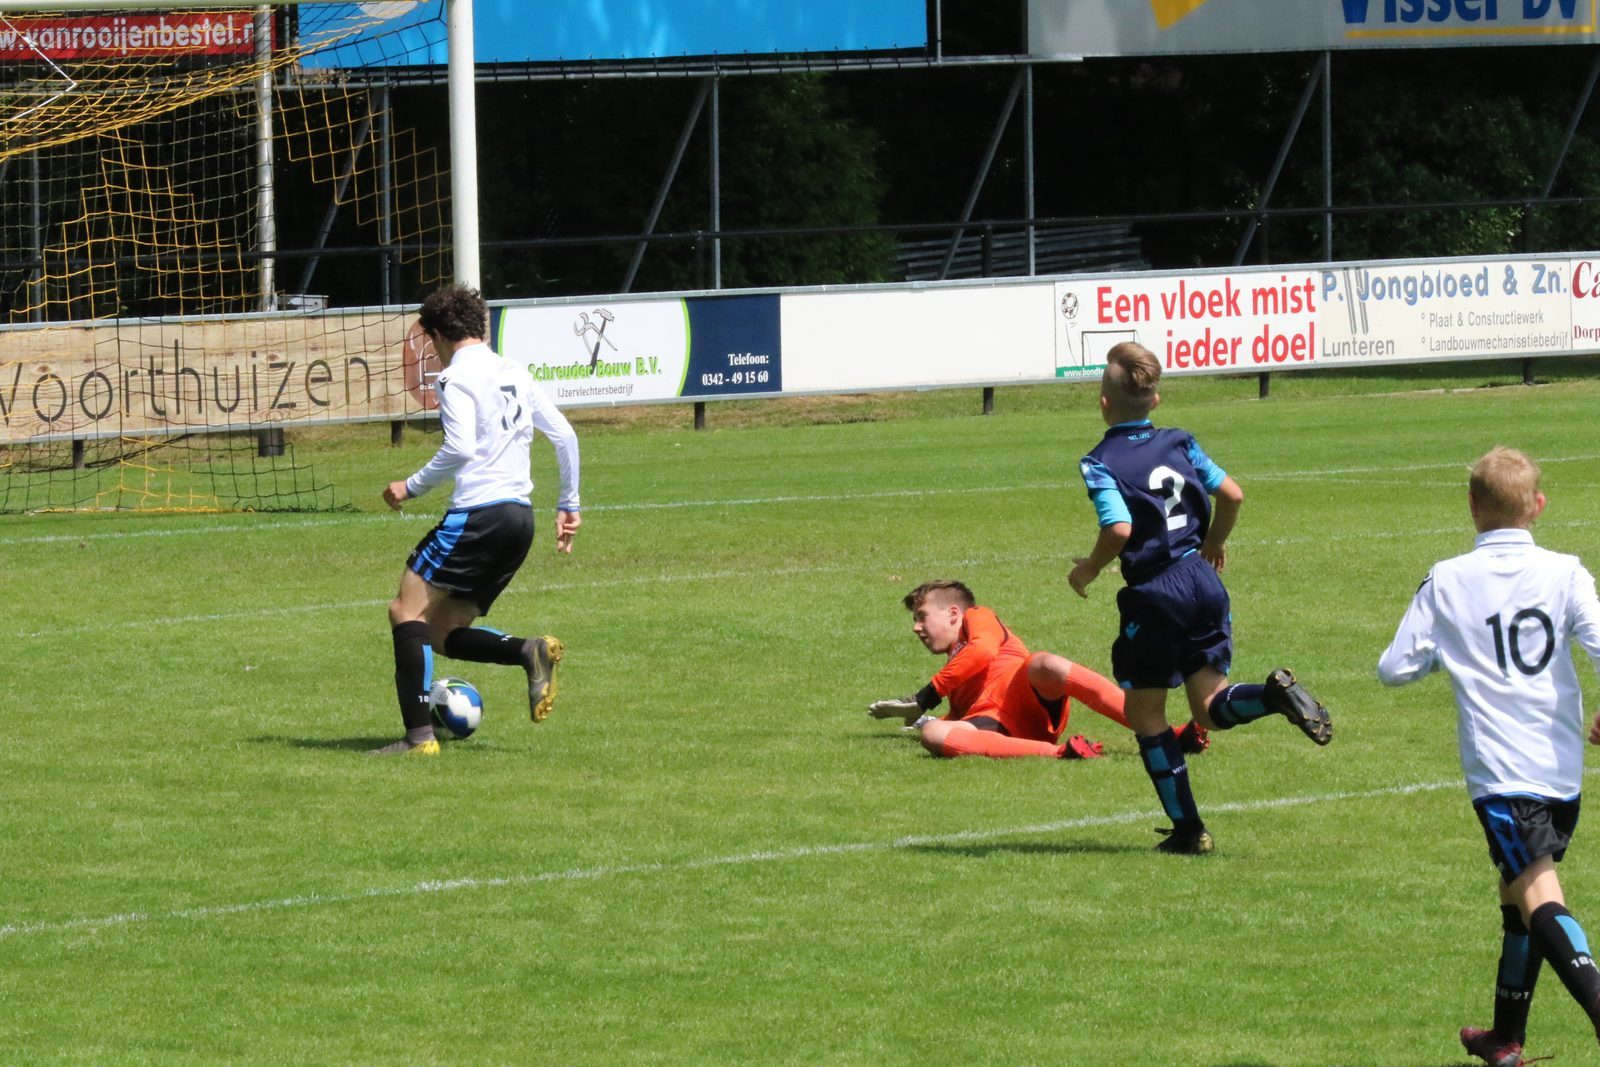 TopParken U14 Soccer Tournament a big success!